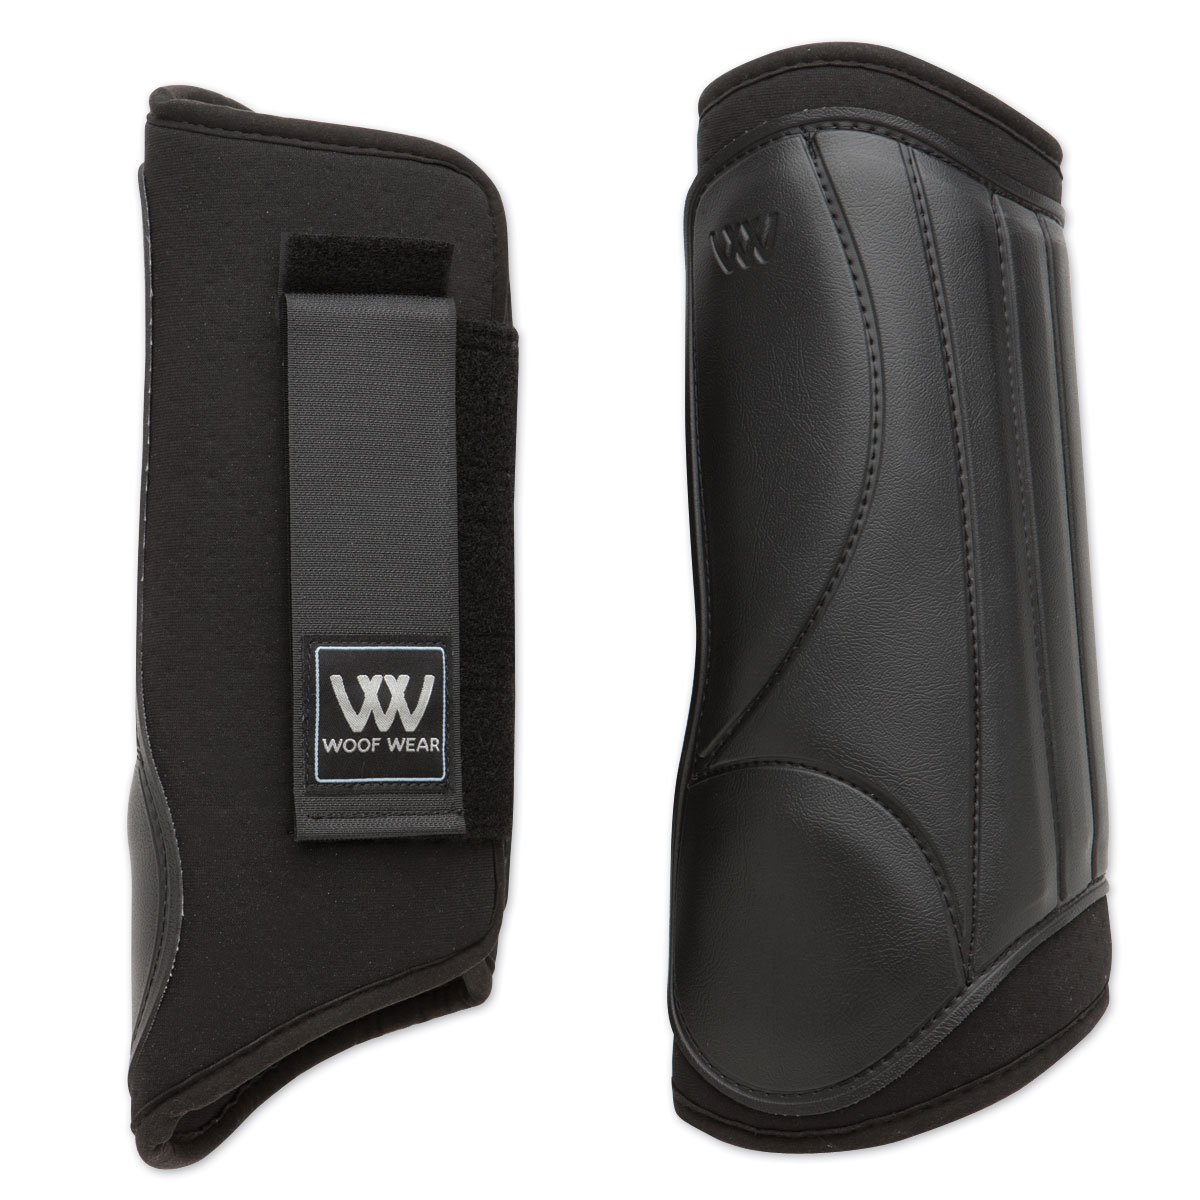 Woof Wear Pro Event Boots - Hind